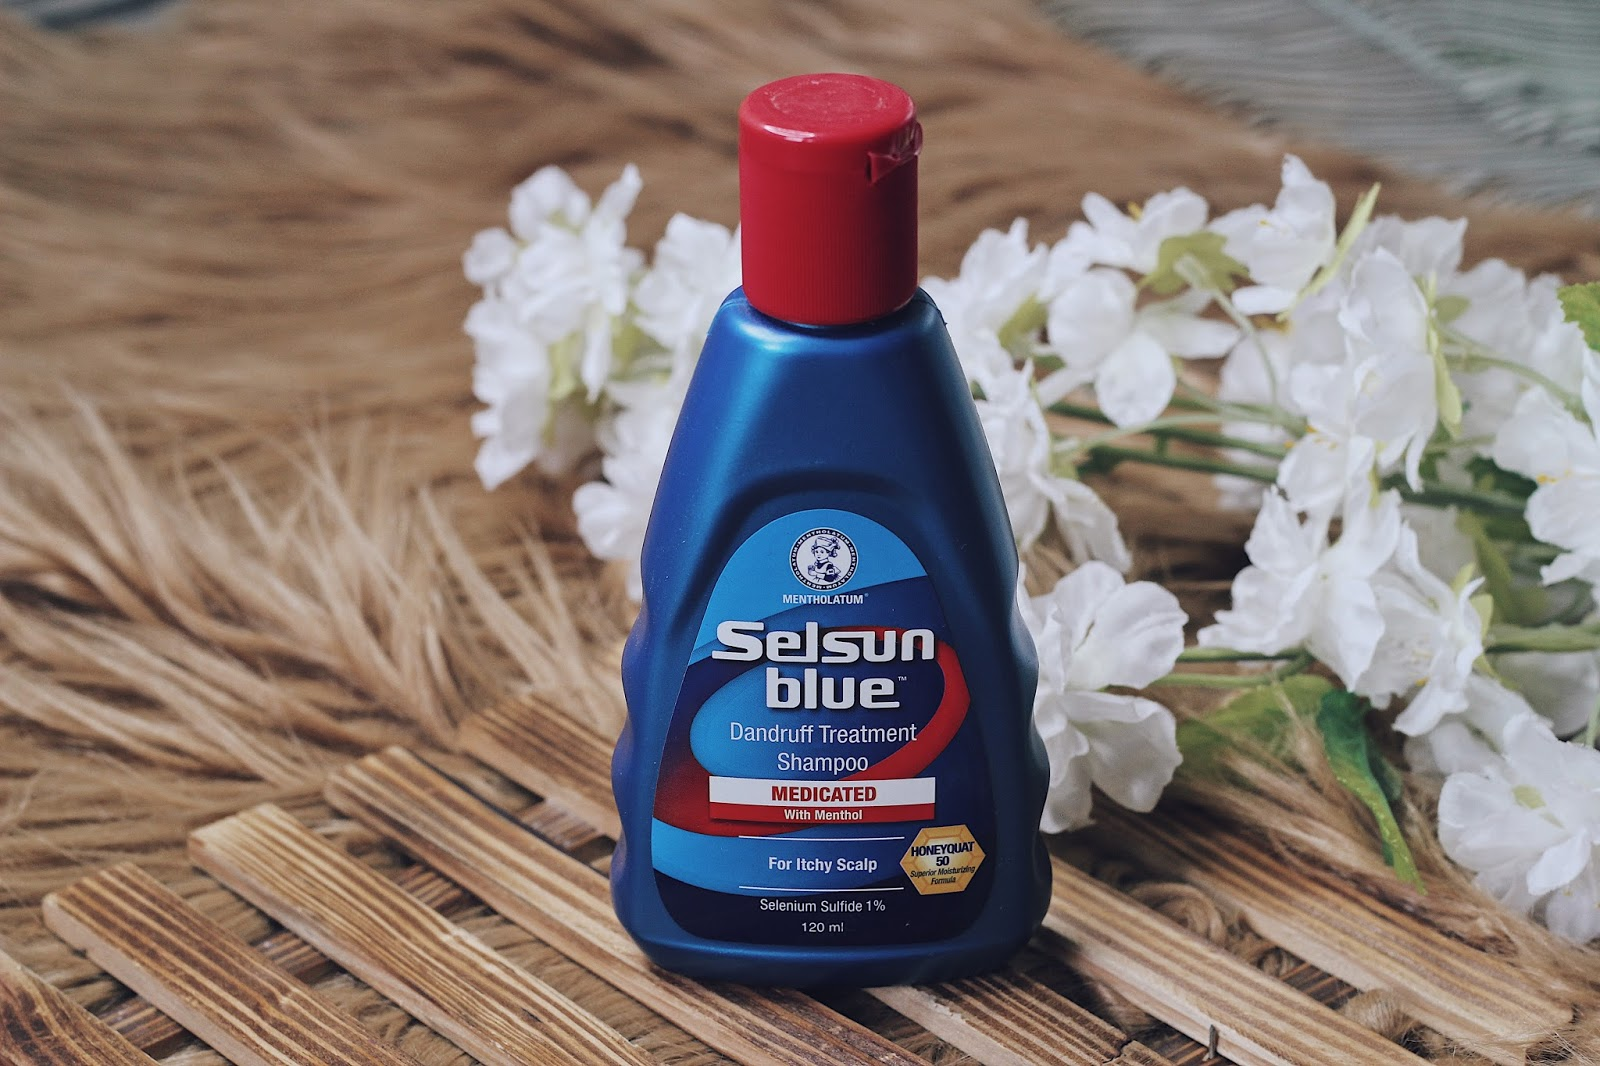 selsun blue medicated shampoo review